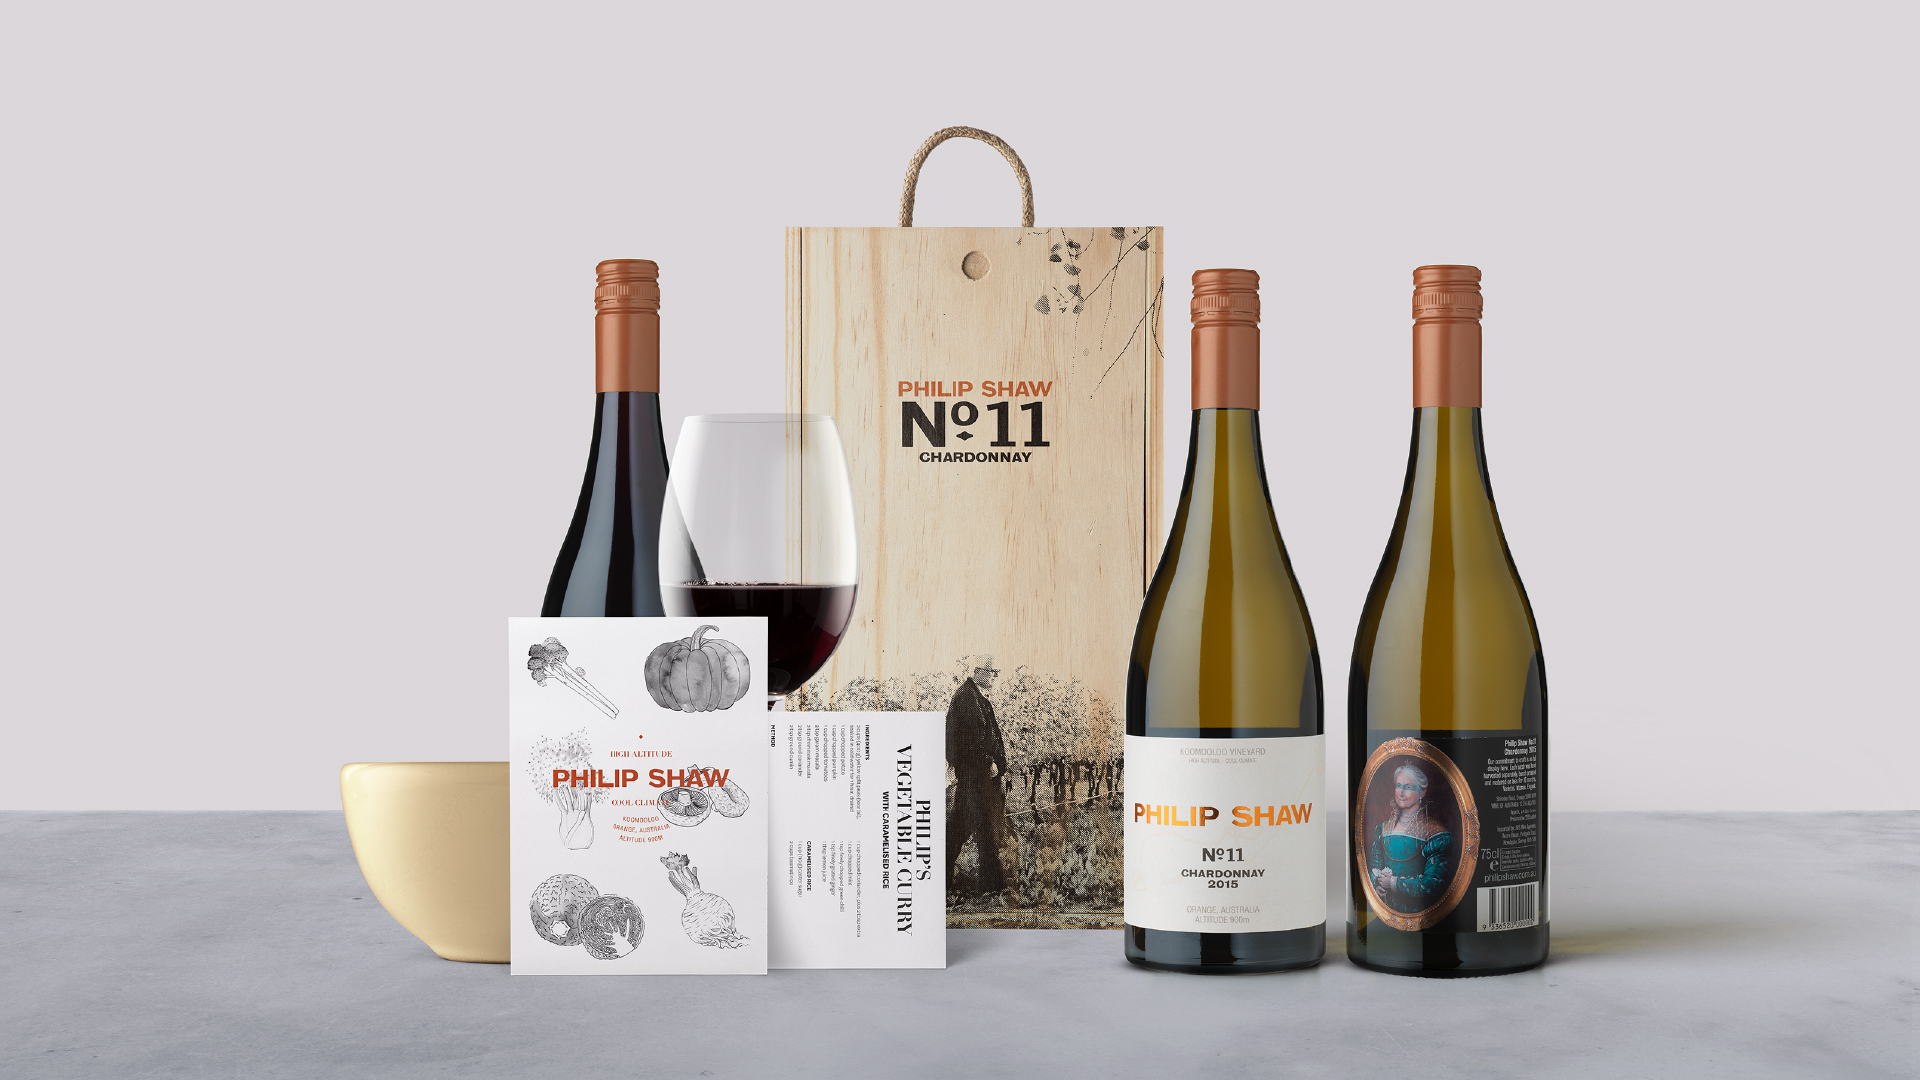 A selection of branded products from Philip Shaw Wines designed by Helium Design Melbourne including bottles, packages, tasting notes and recipe cards.